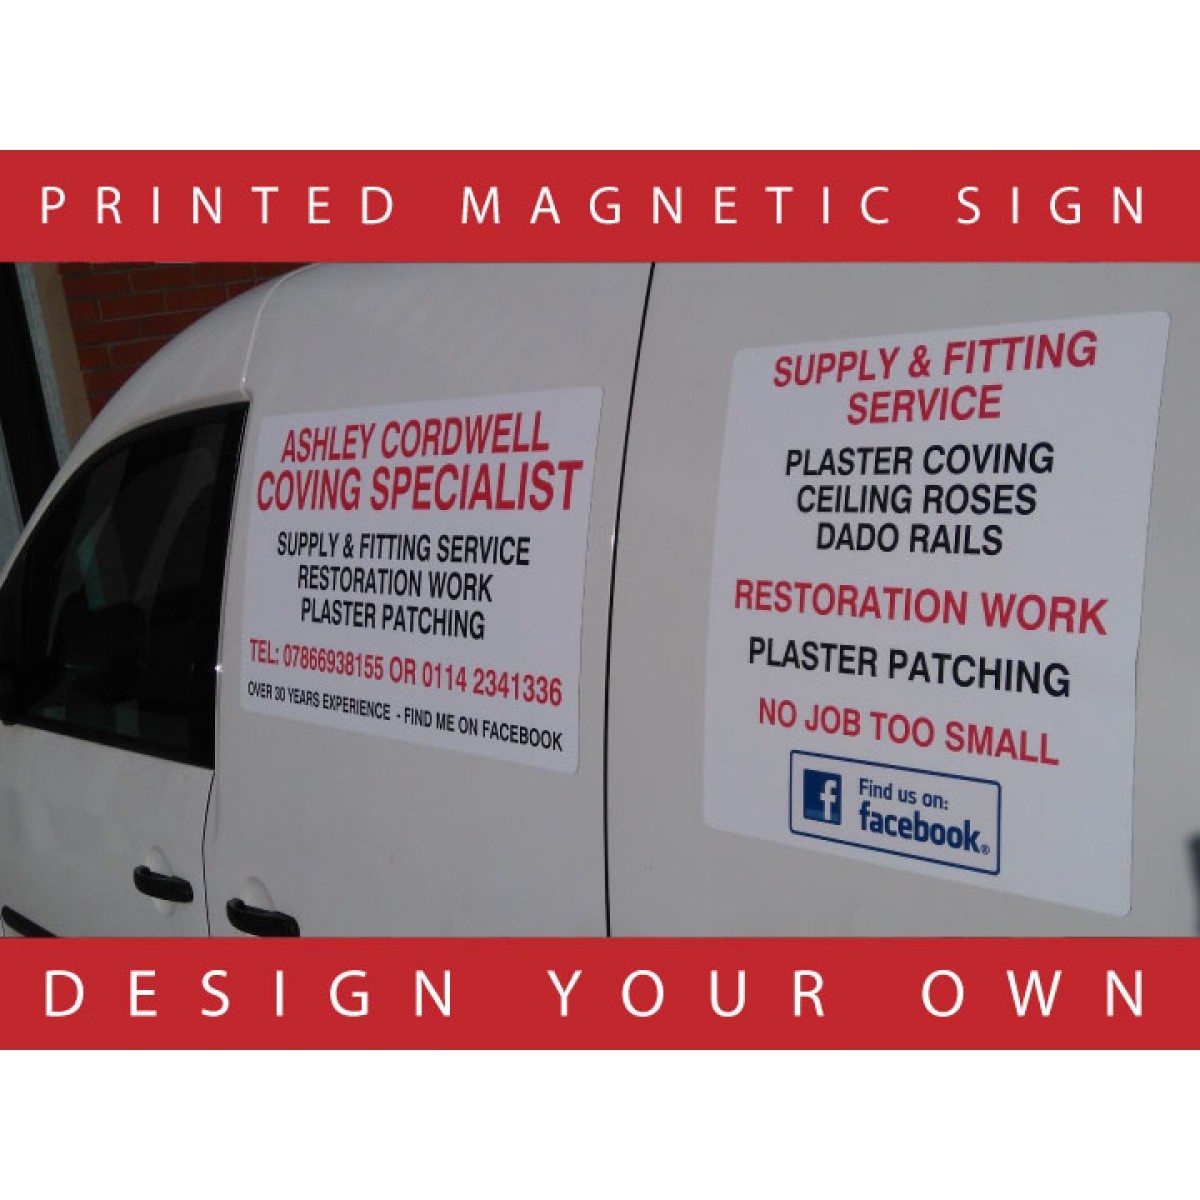 huge selection of best sneakers shopping Magnetic Signs for Cars and Vans - Design Your Own! - The ...